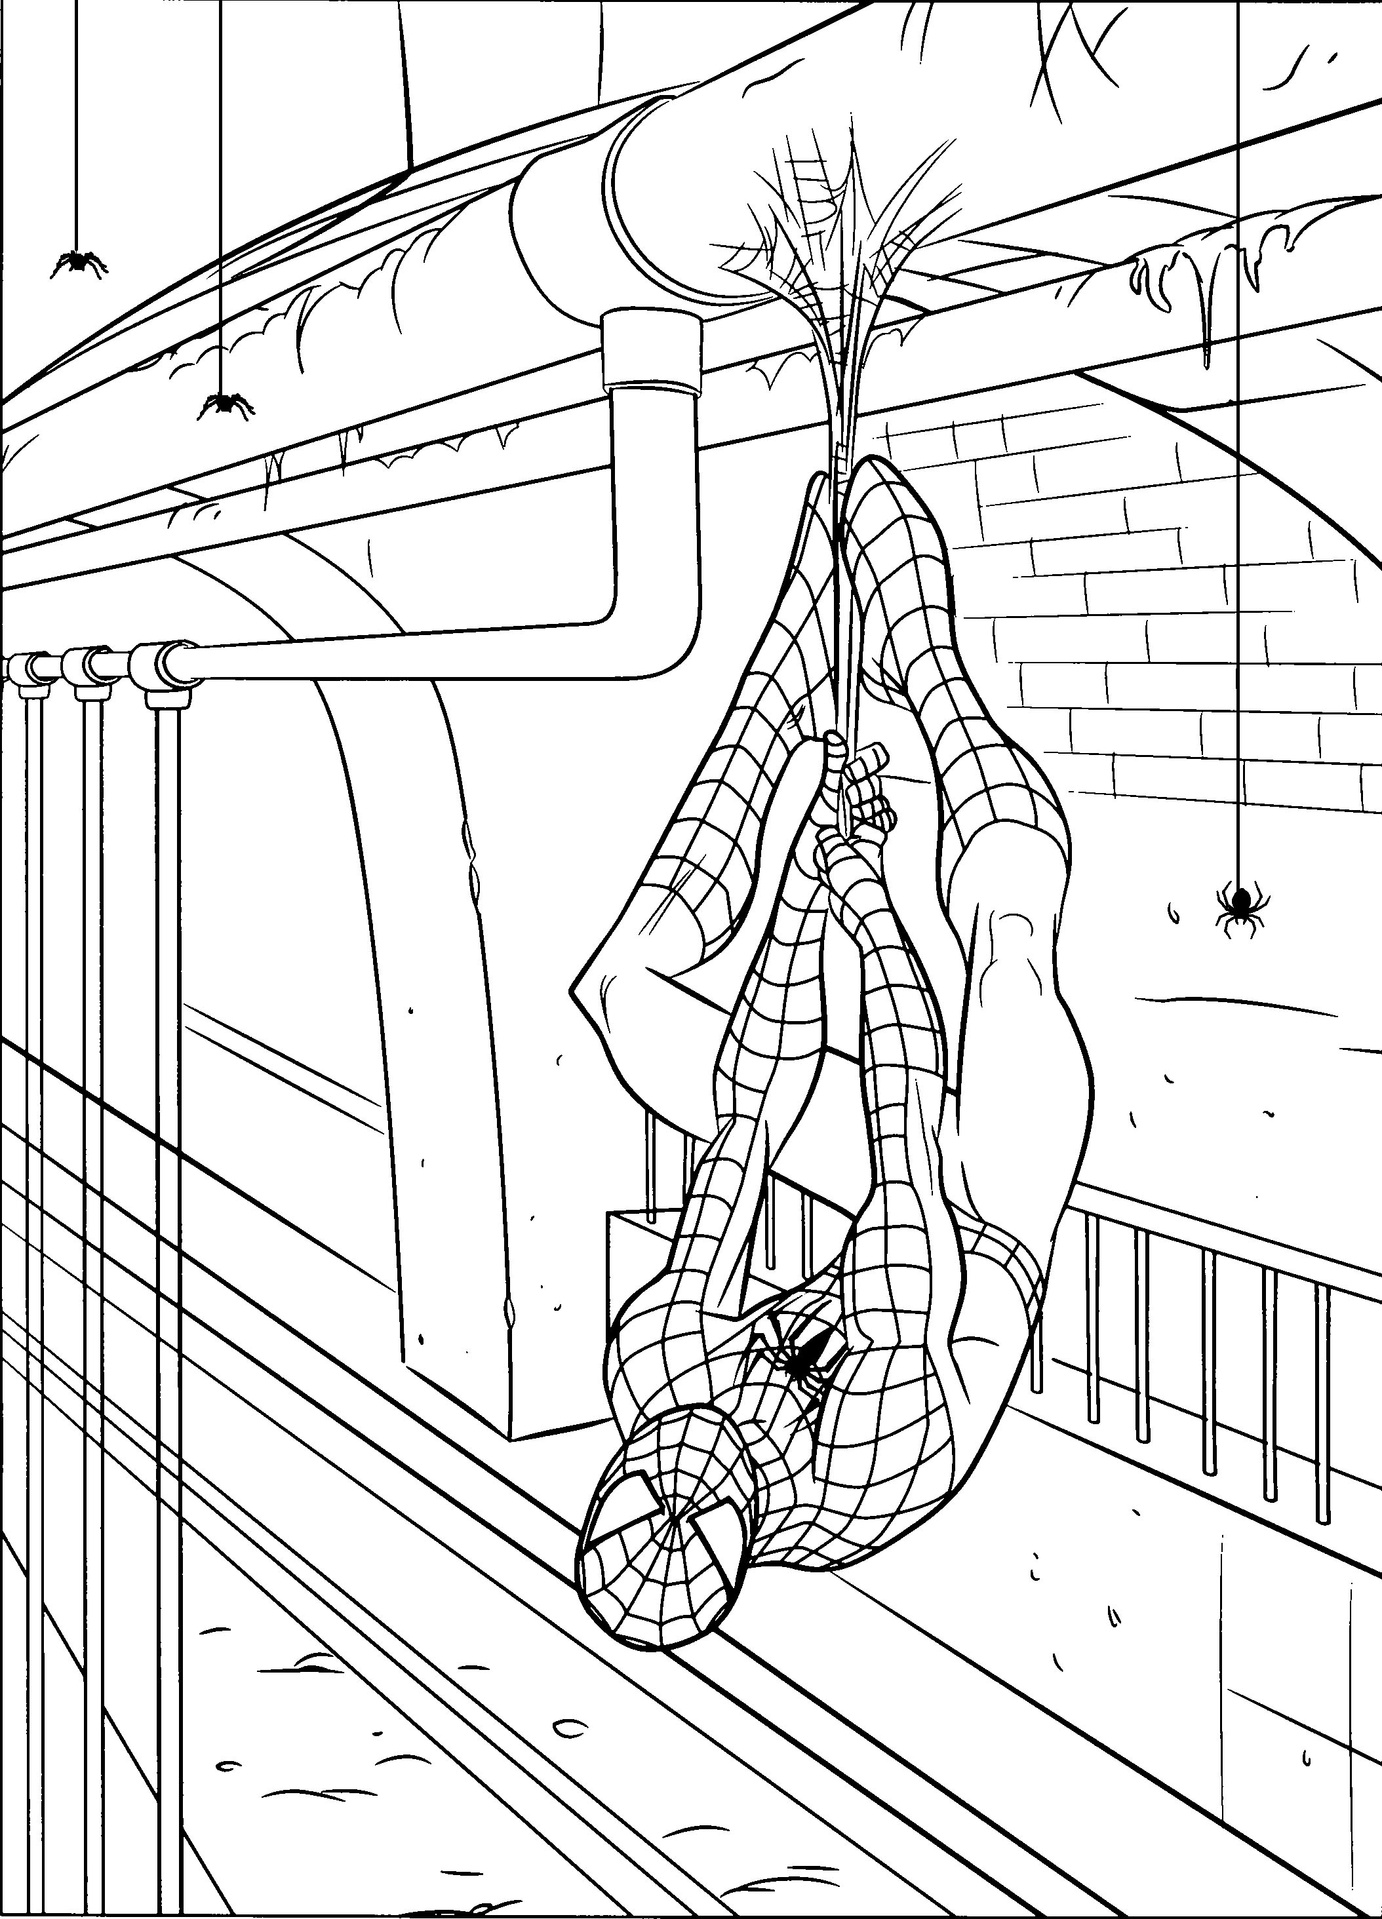 This is an image of Astounding Spiderman Pictures to Print